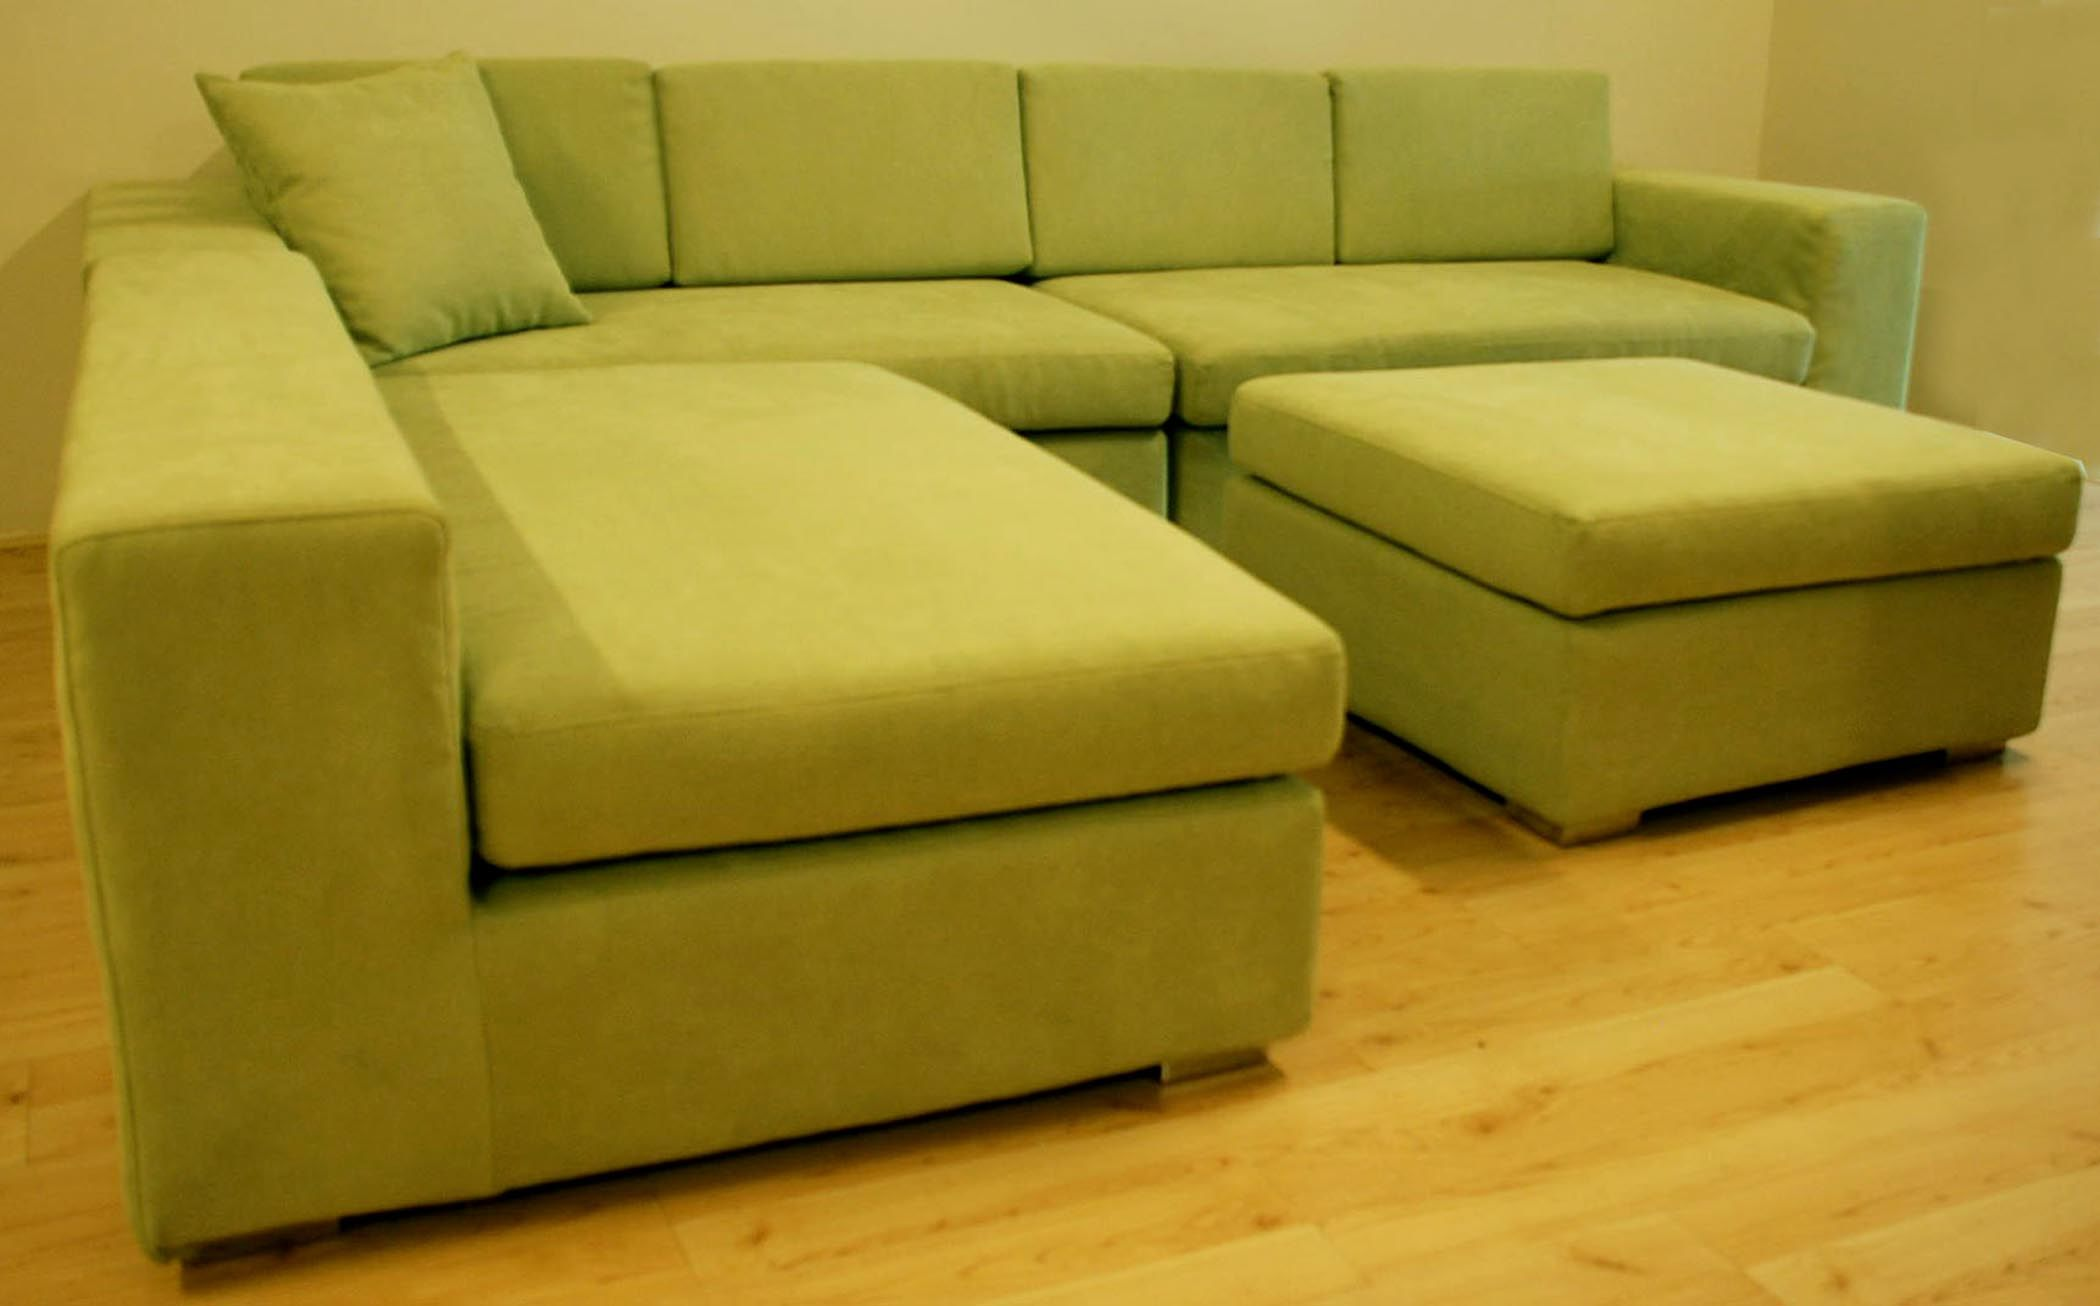 lovely lime green sofa architecture-Stunning Lime Green sofa Plan